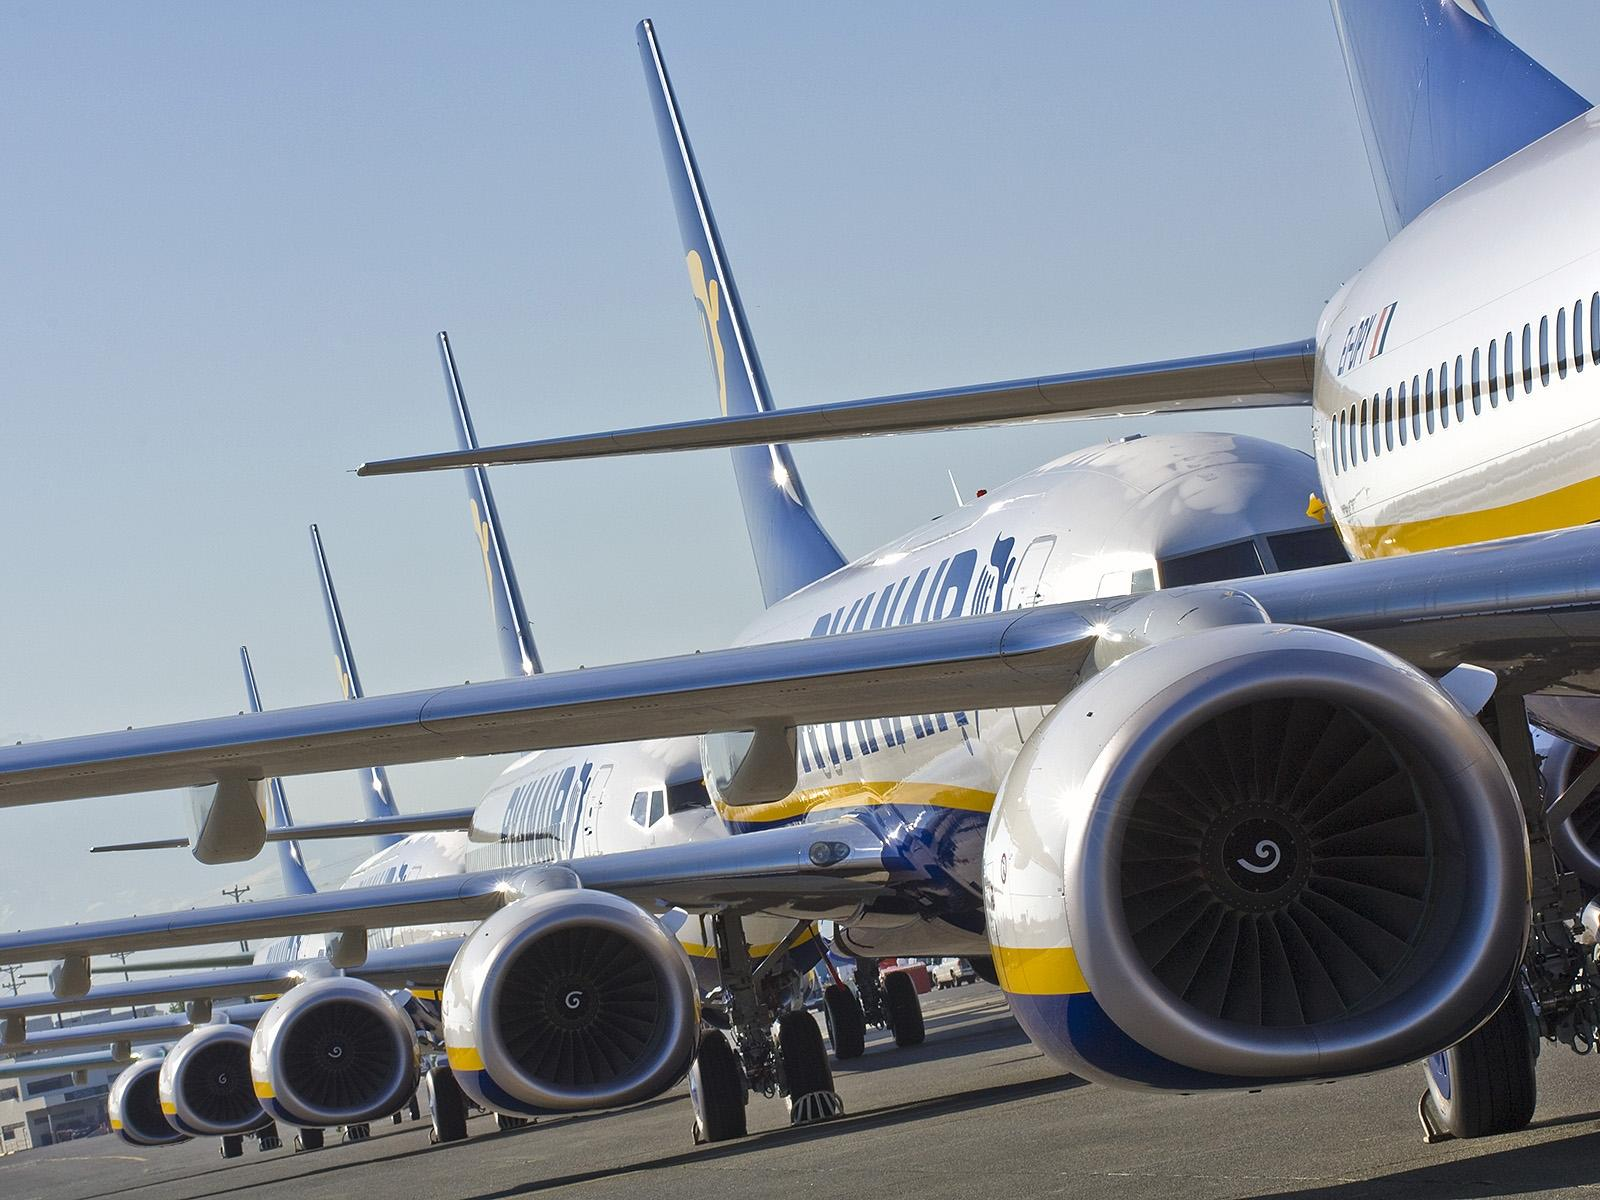 Ryanair's experience and sway at airports across Europe will give it extra clout in the market. Image -Ryanair